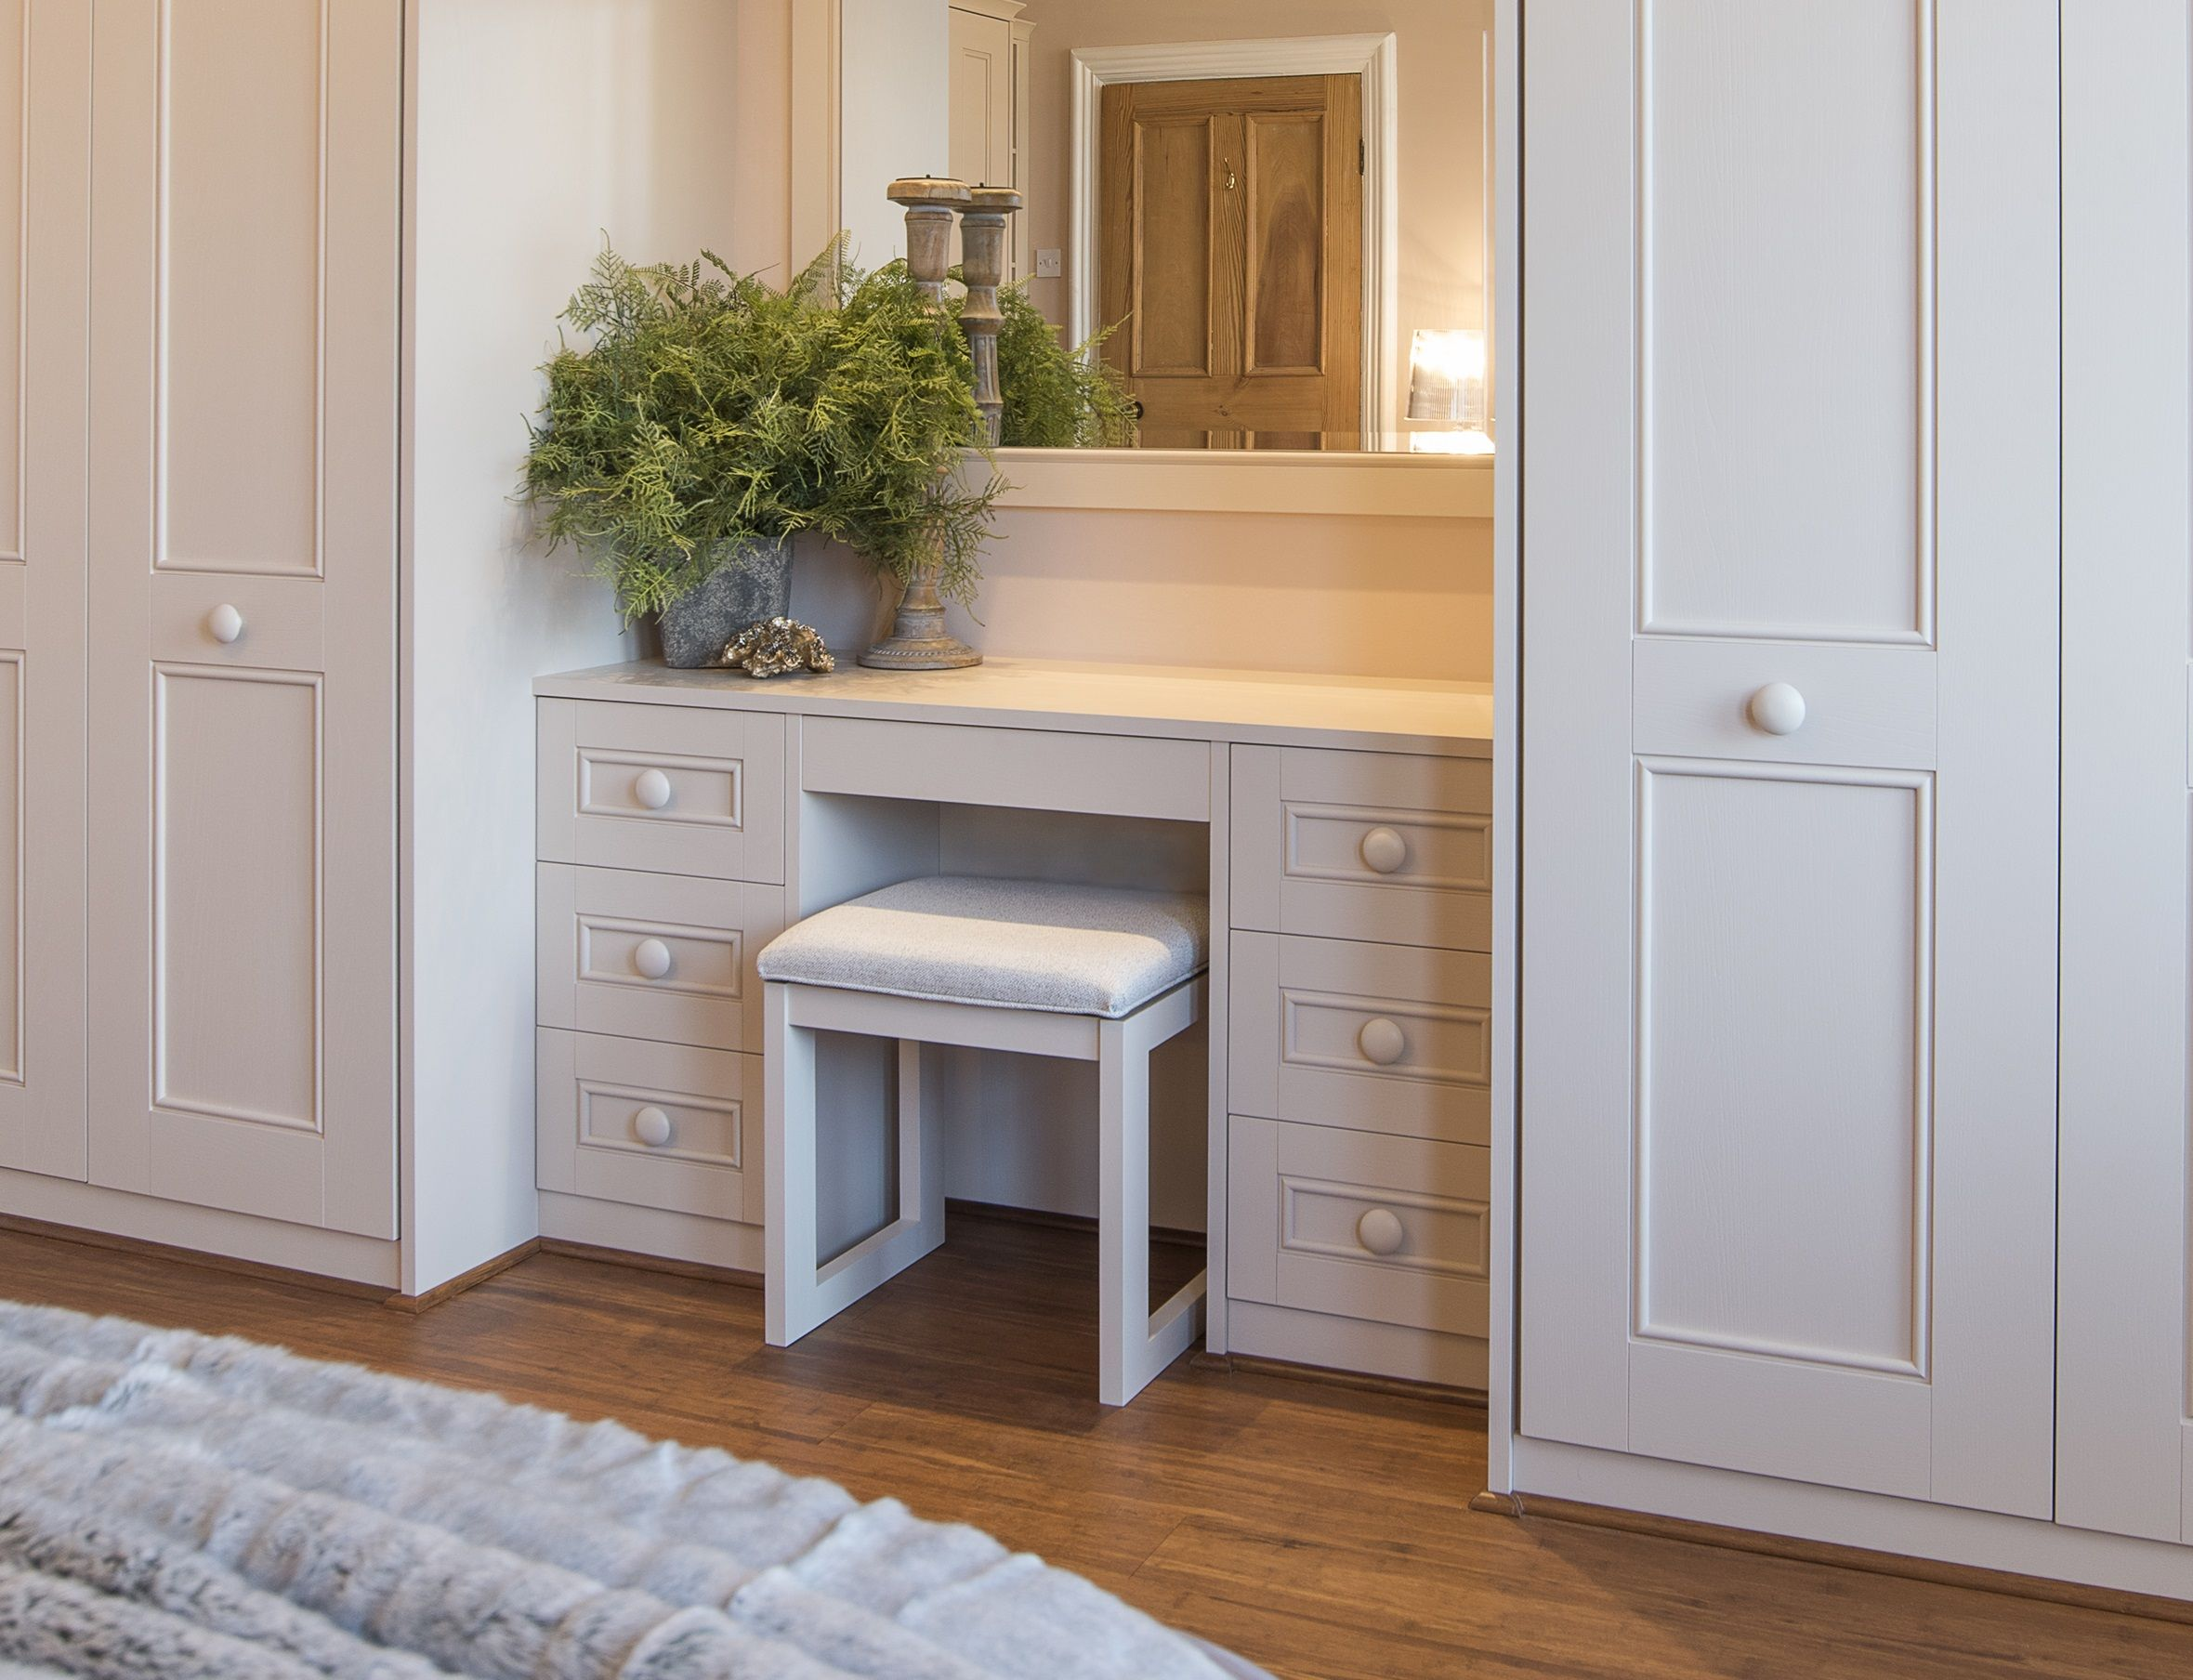 Best An Elegant Harpsden Bedroom Wardrobe With Dressing Table 400 x 300